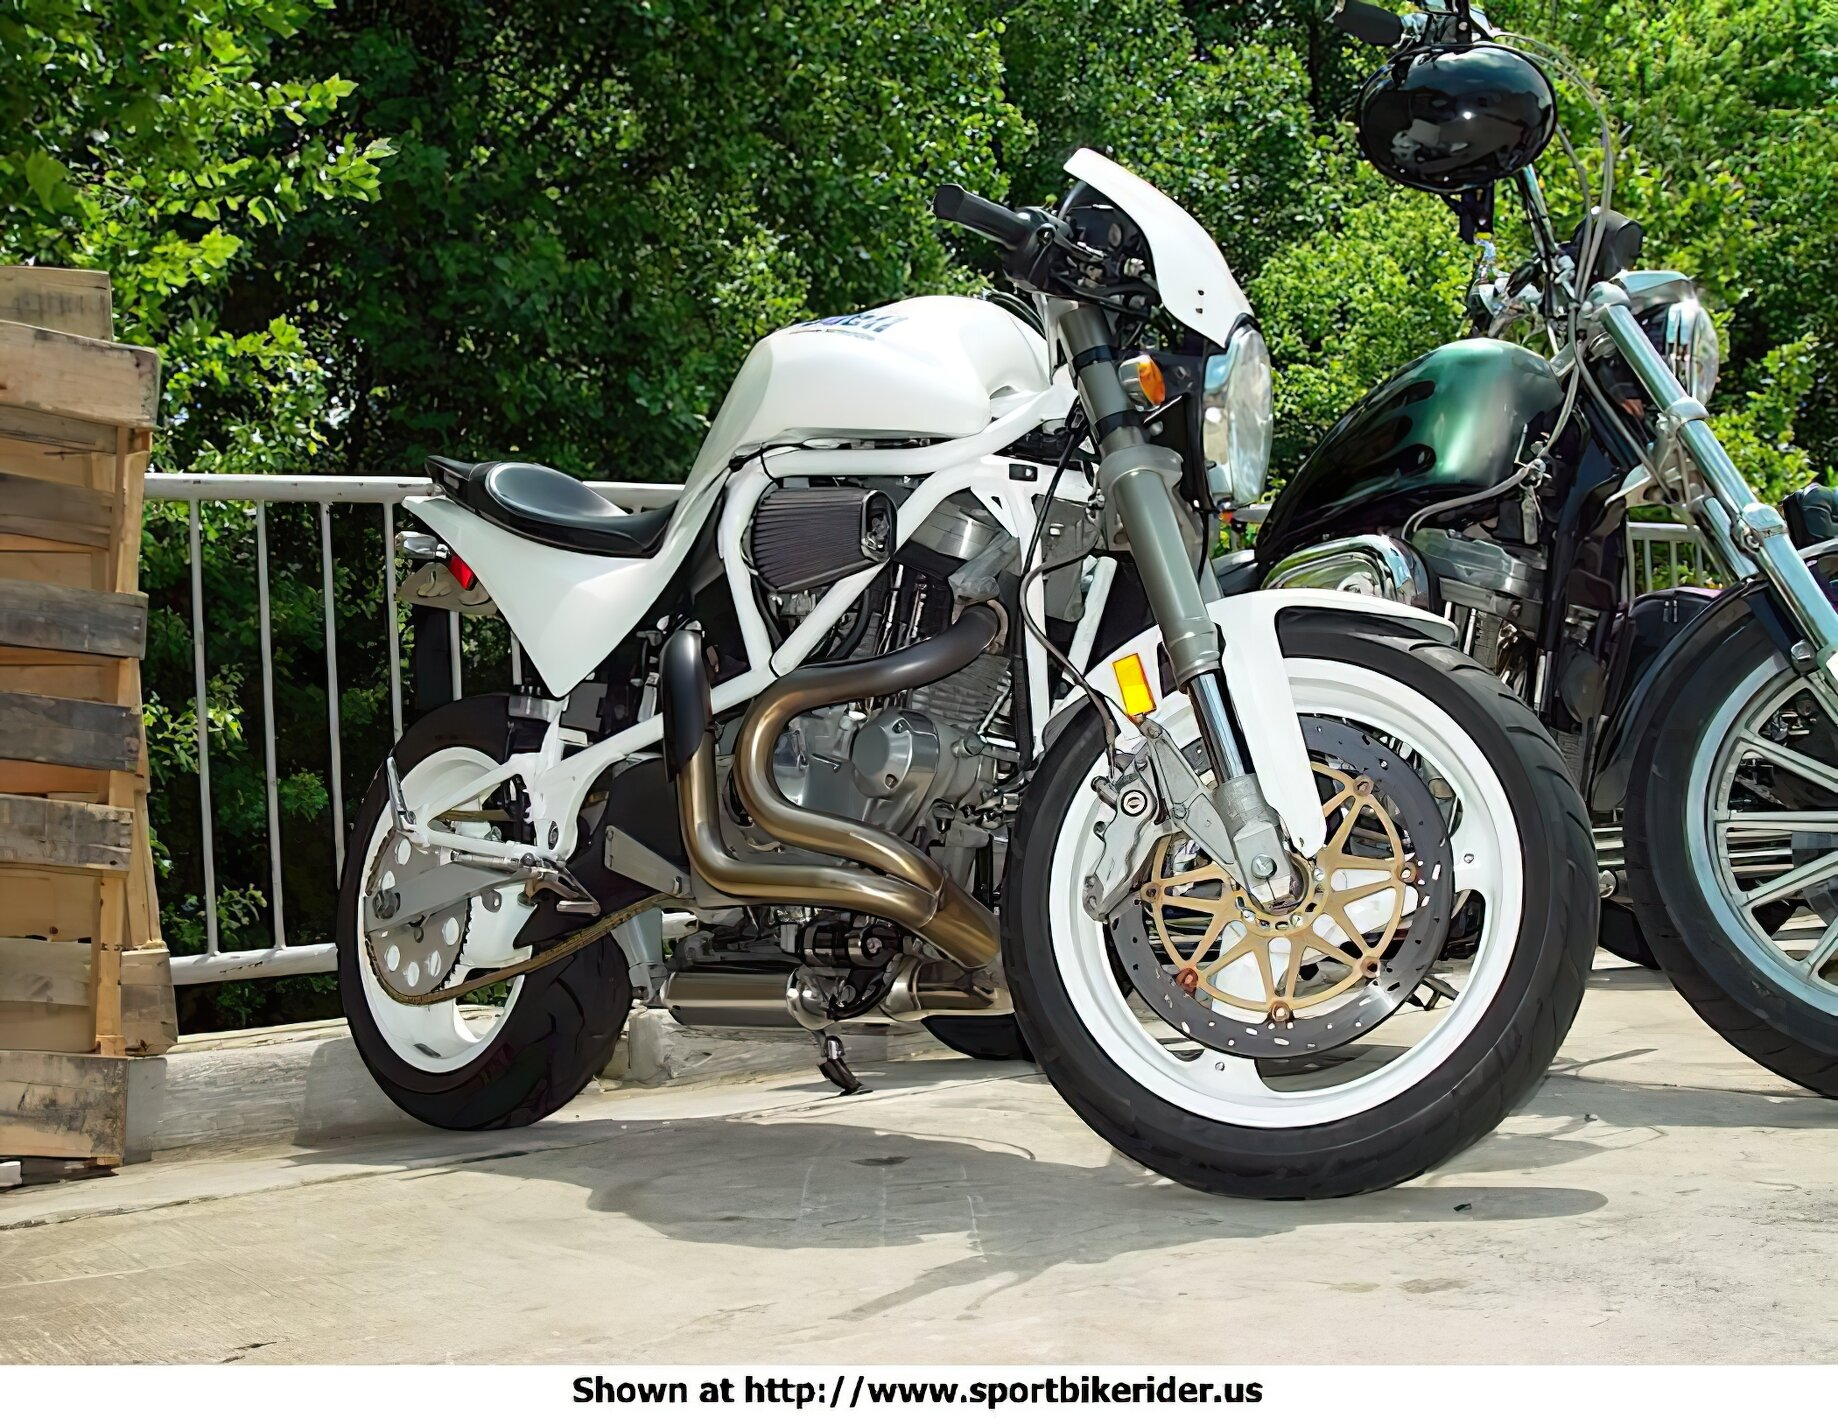 Buell S1/S2/S3 - ID: 46160